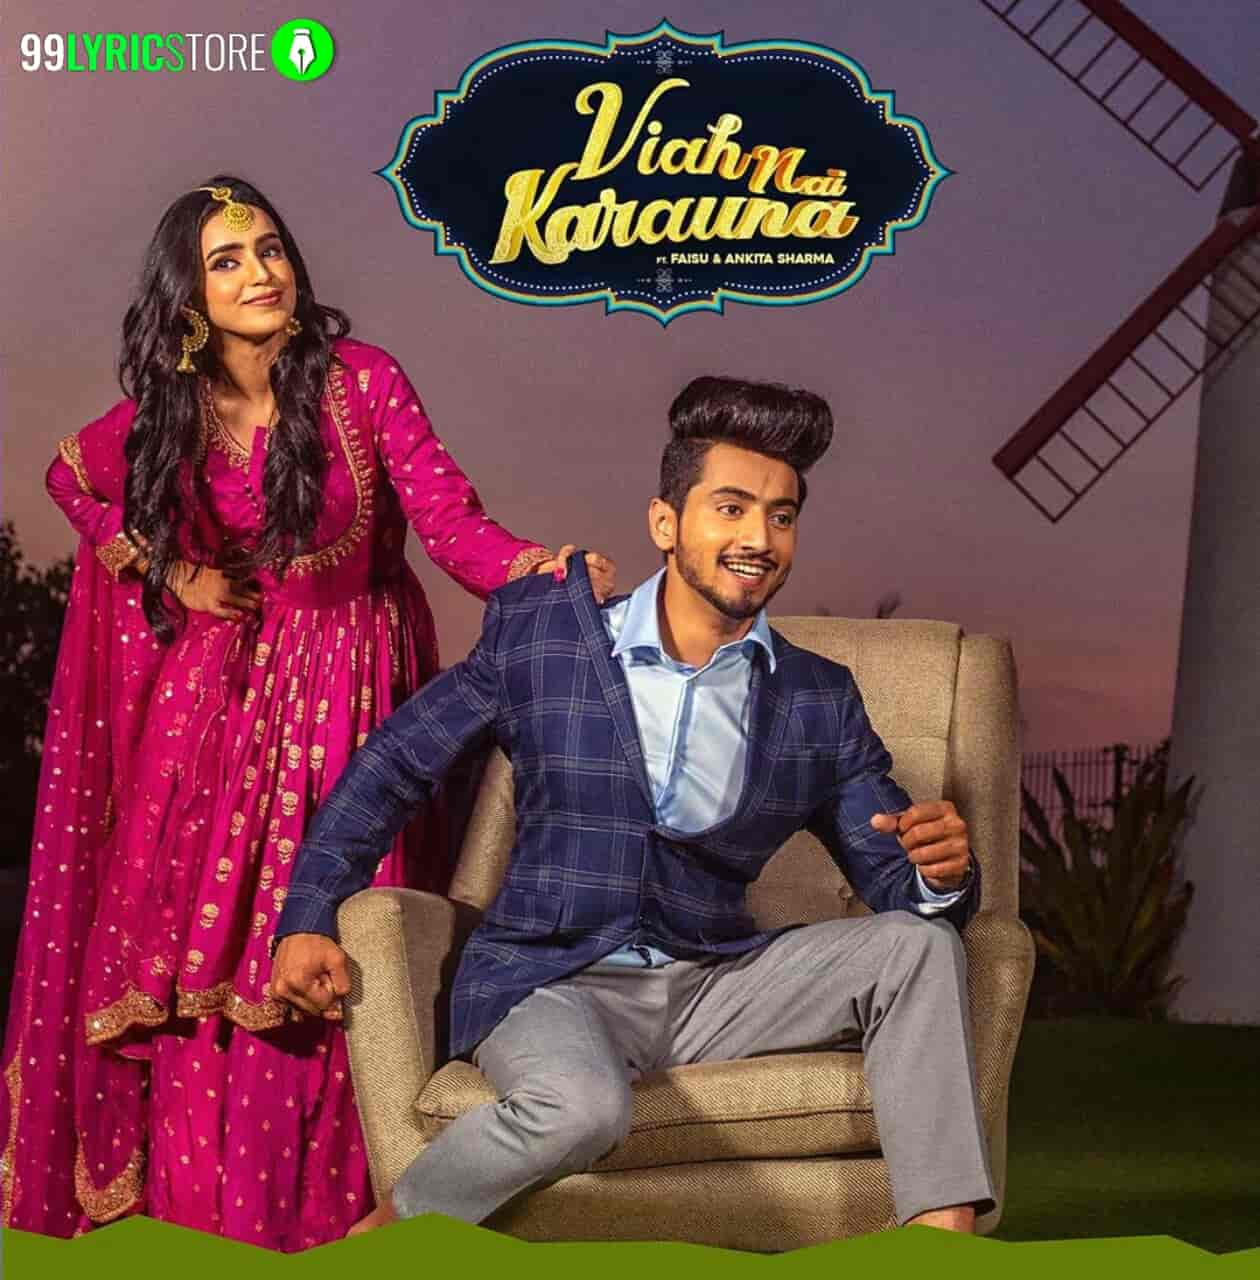 Viah Nai Karauna Preetinder Song images